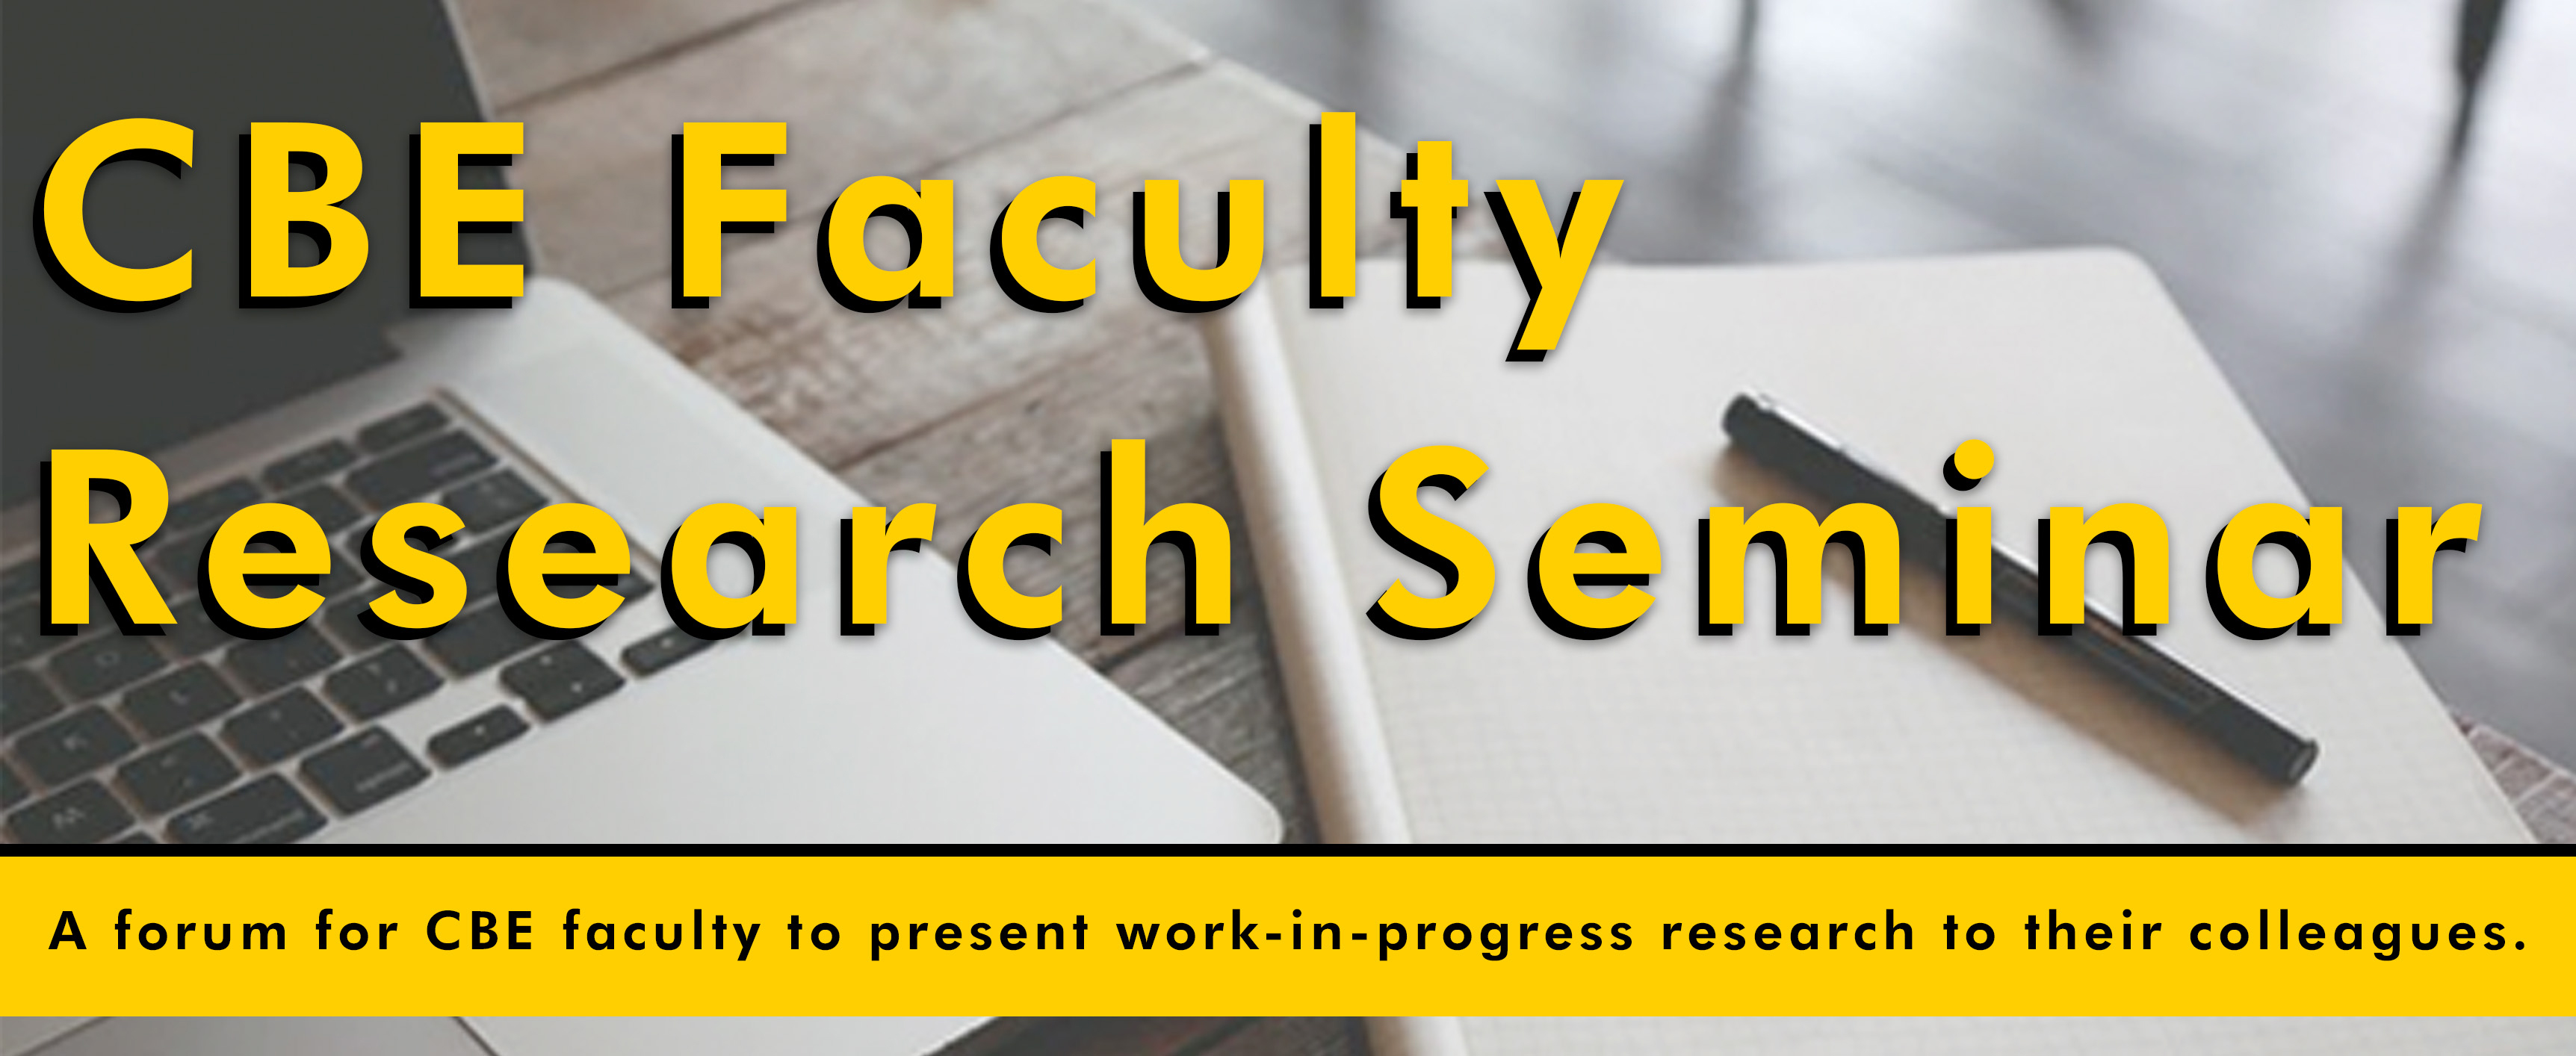 Faculty Research Seminar